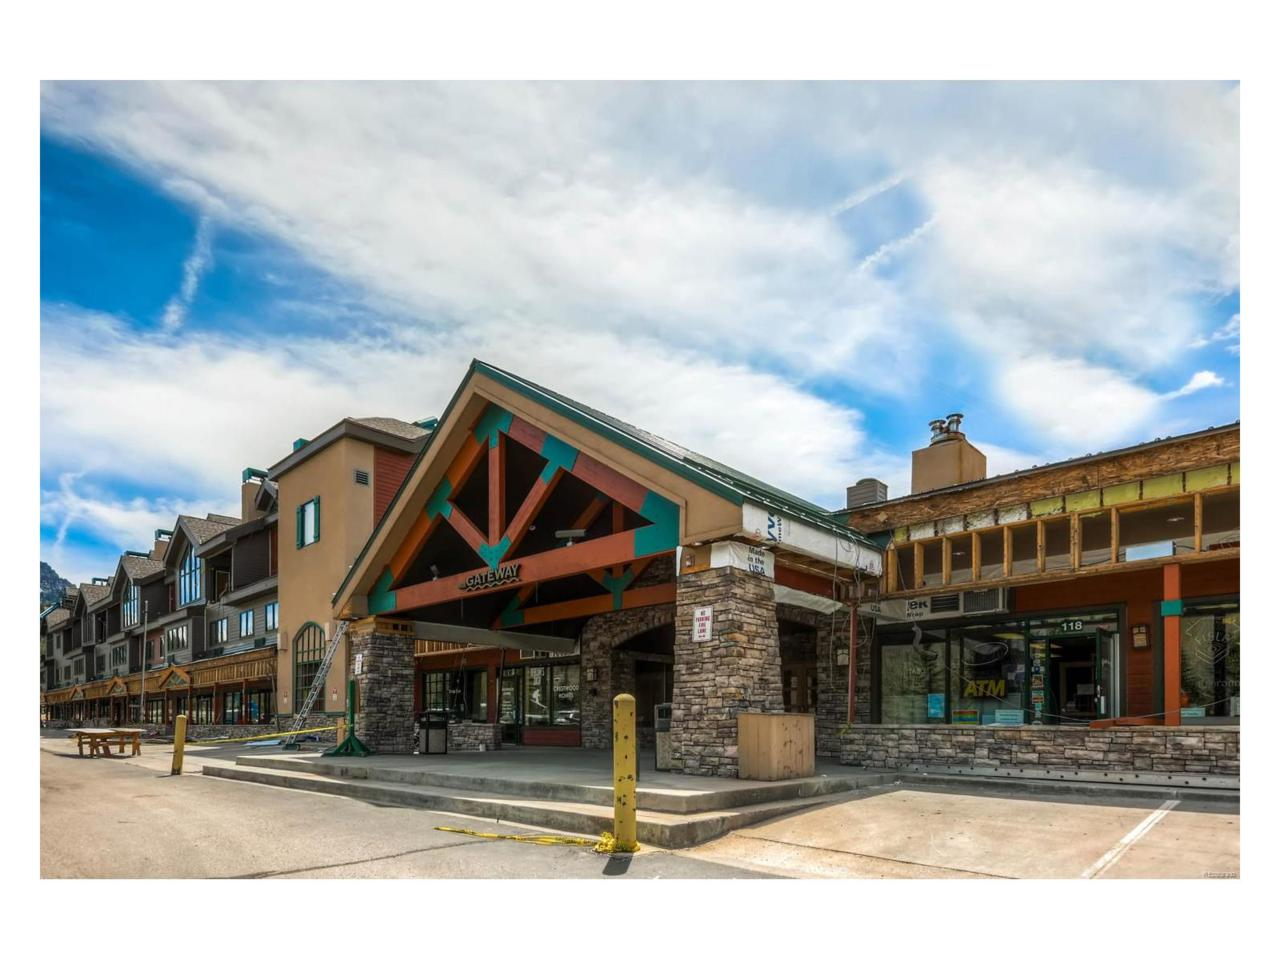 23110 Us Highway 6 #163, Dillon, CO 80435 (MLS #7988108) :: 8z Real Estate